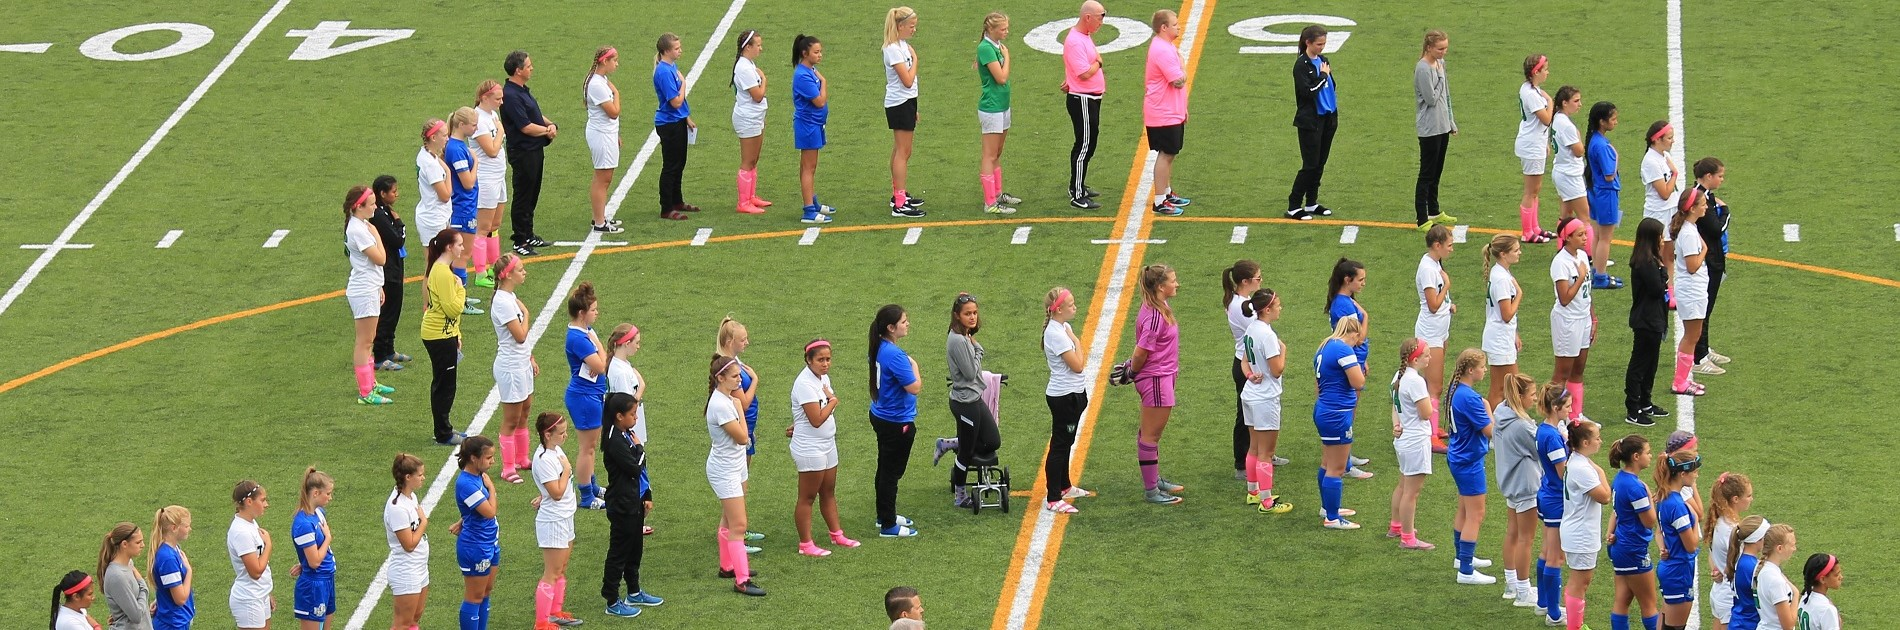 Cancer awareness soccer match between North Mason and Tumwater High School.